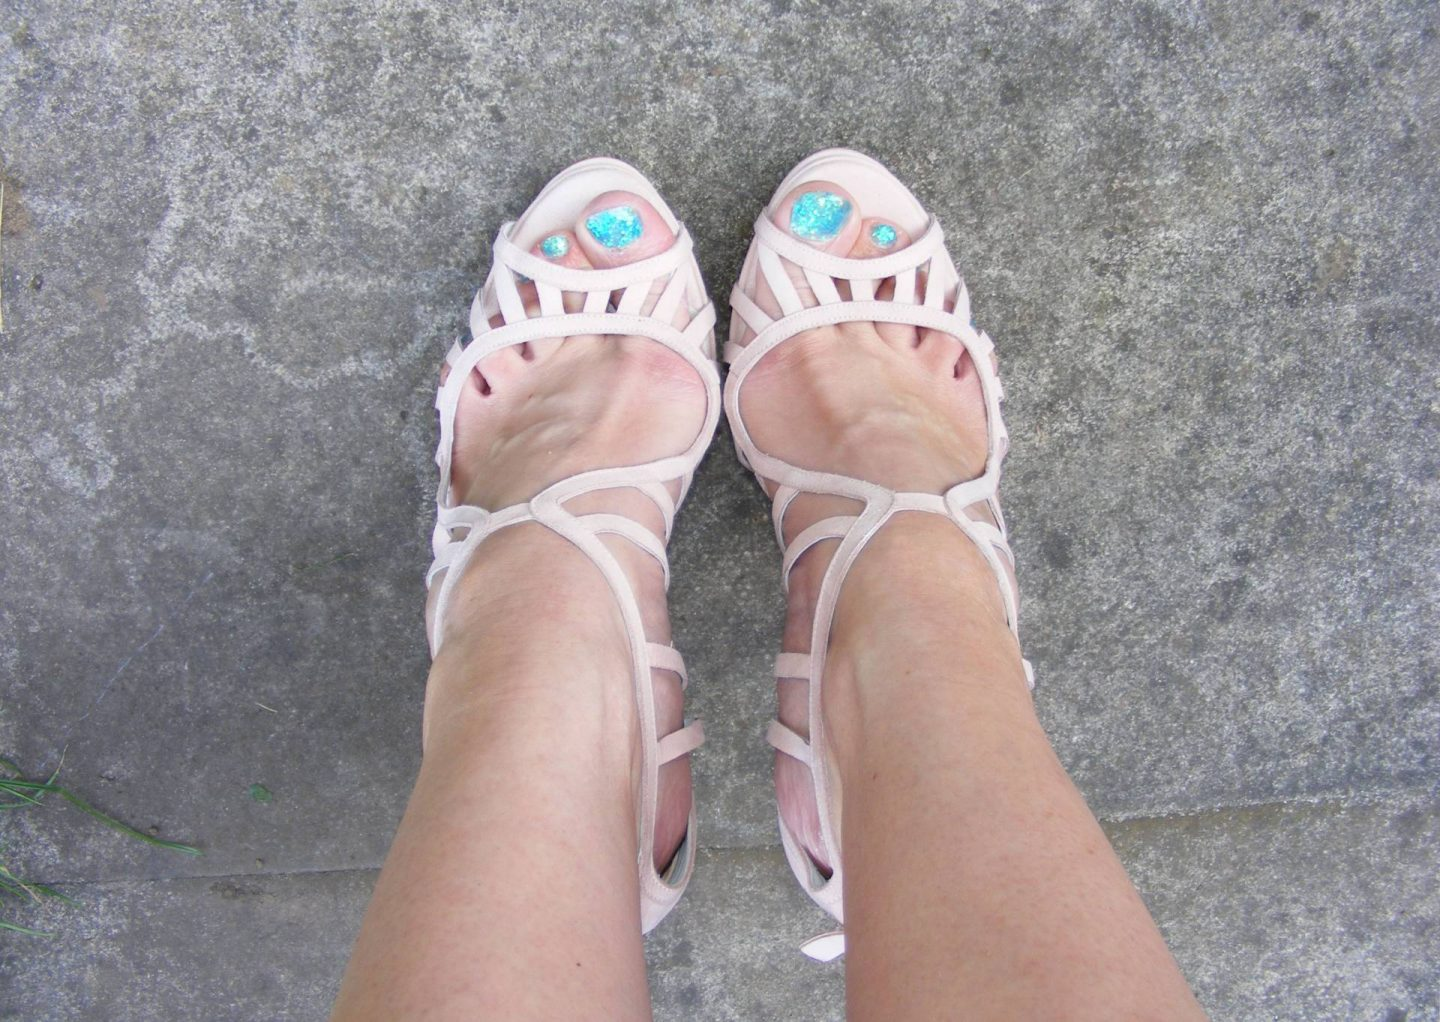 Strutt Couture pink strappy sandals